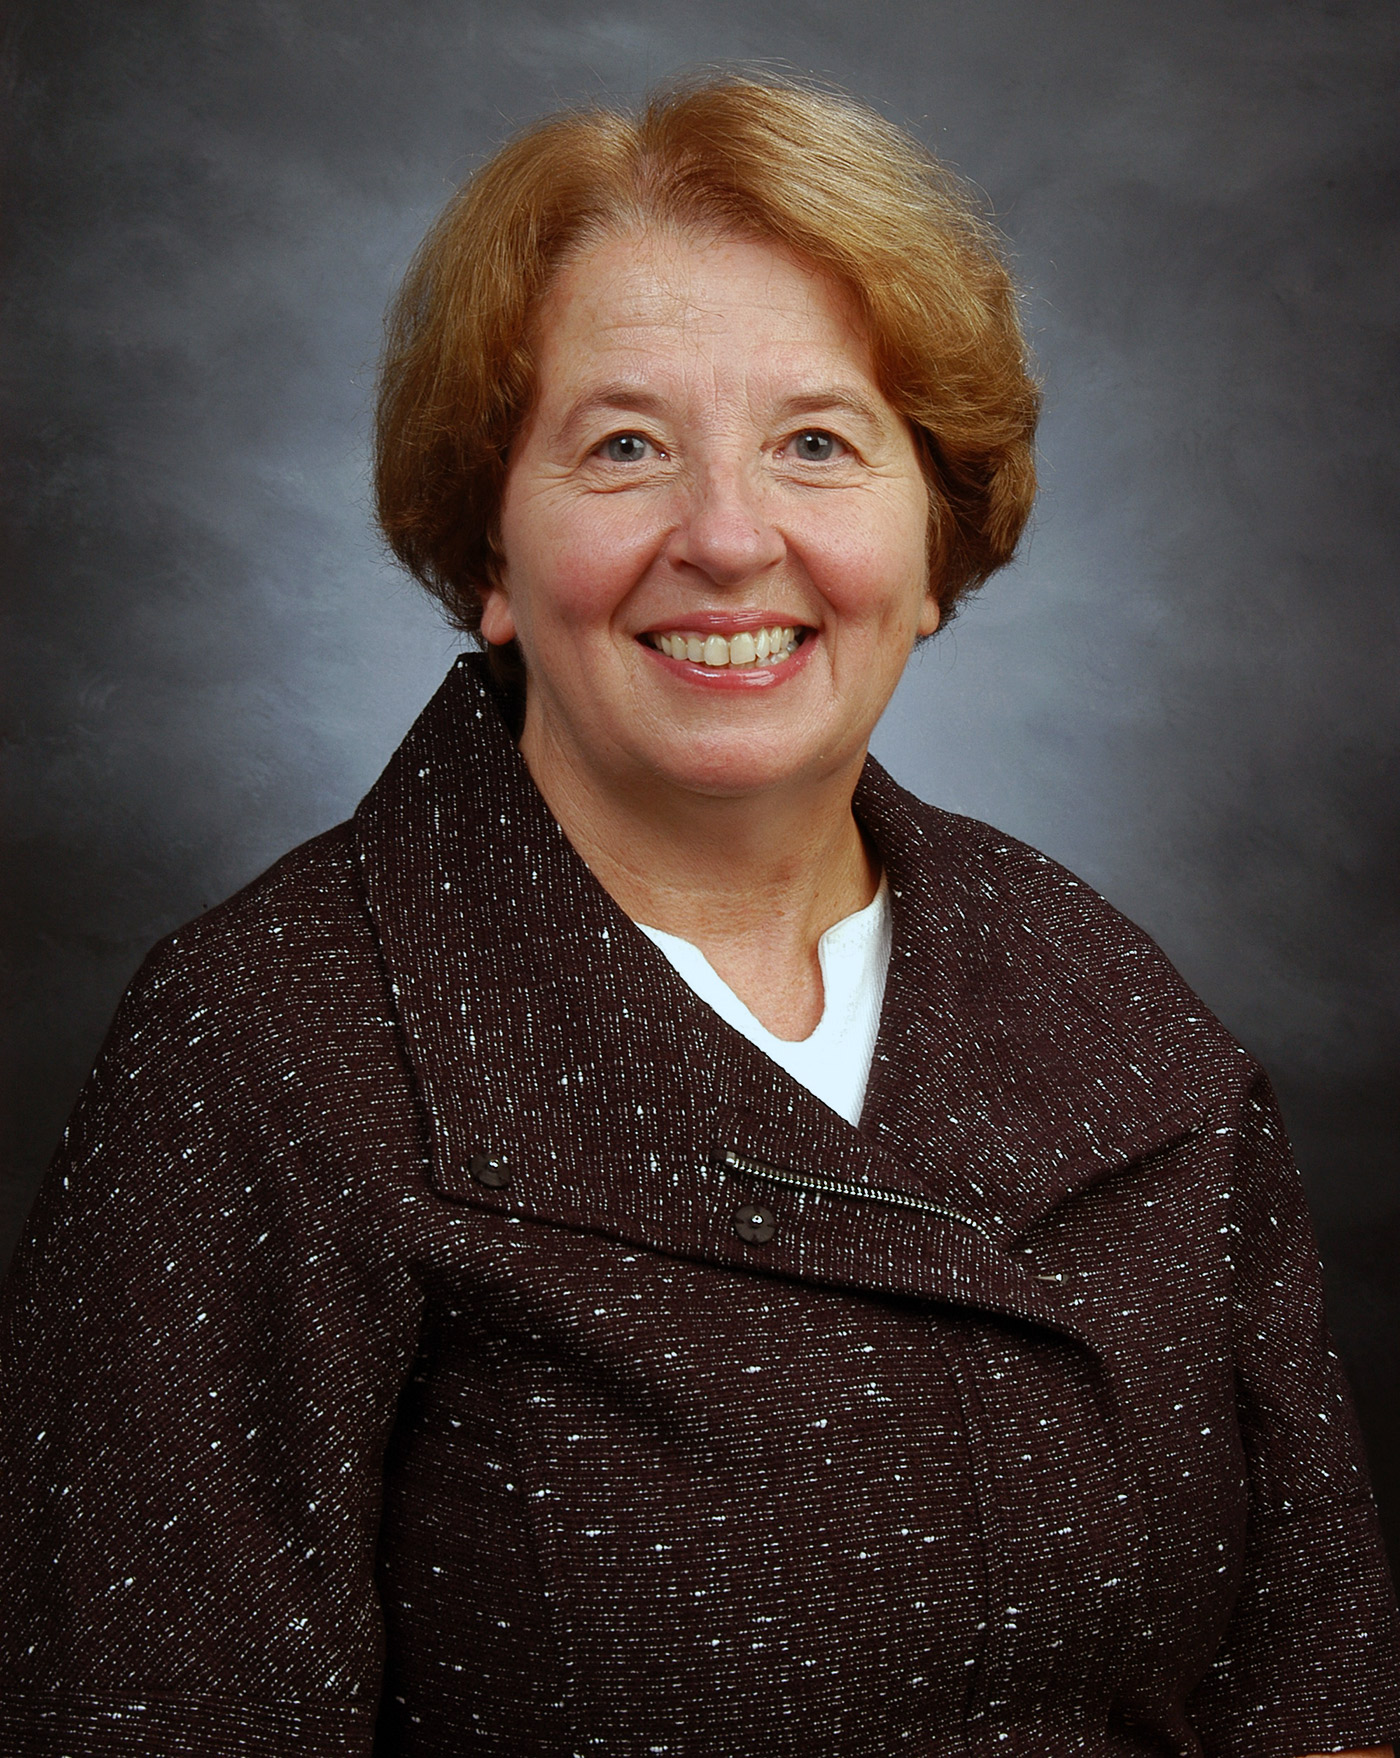 Kathleen (Kay) Doyle, Ph.D., M.S., MLS (ASCP) CM is a Professor Emeritus in the Biomedical and Nutritional Sciences Department at UMass Lowell.